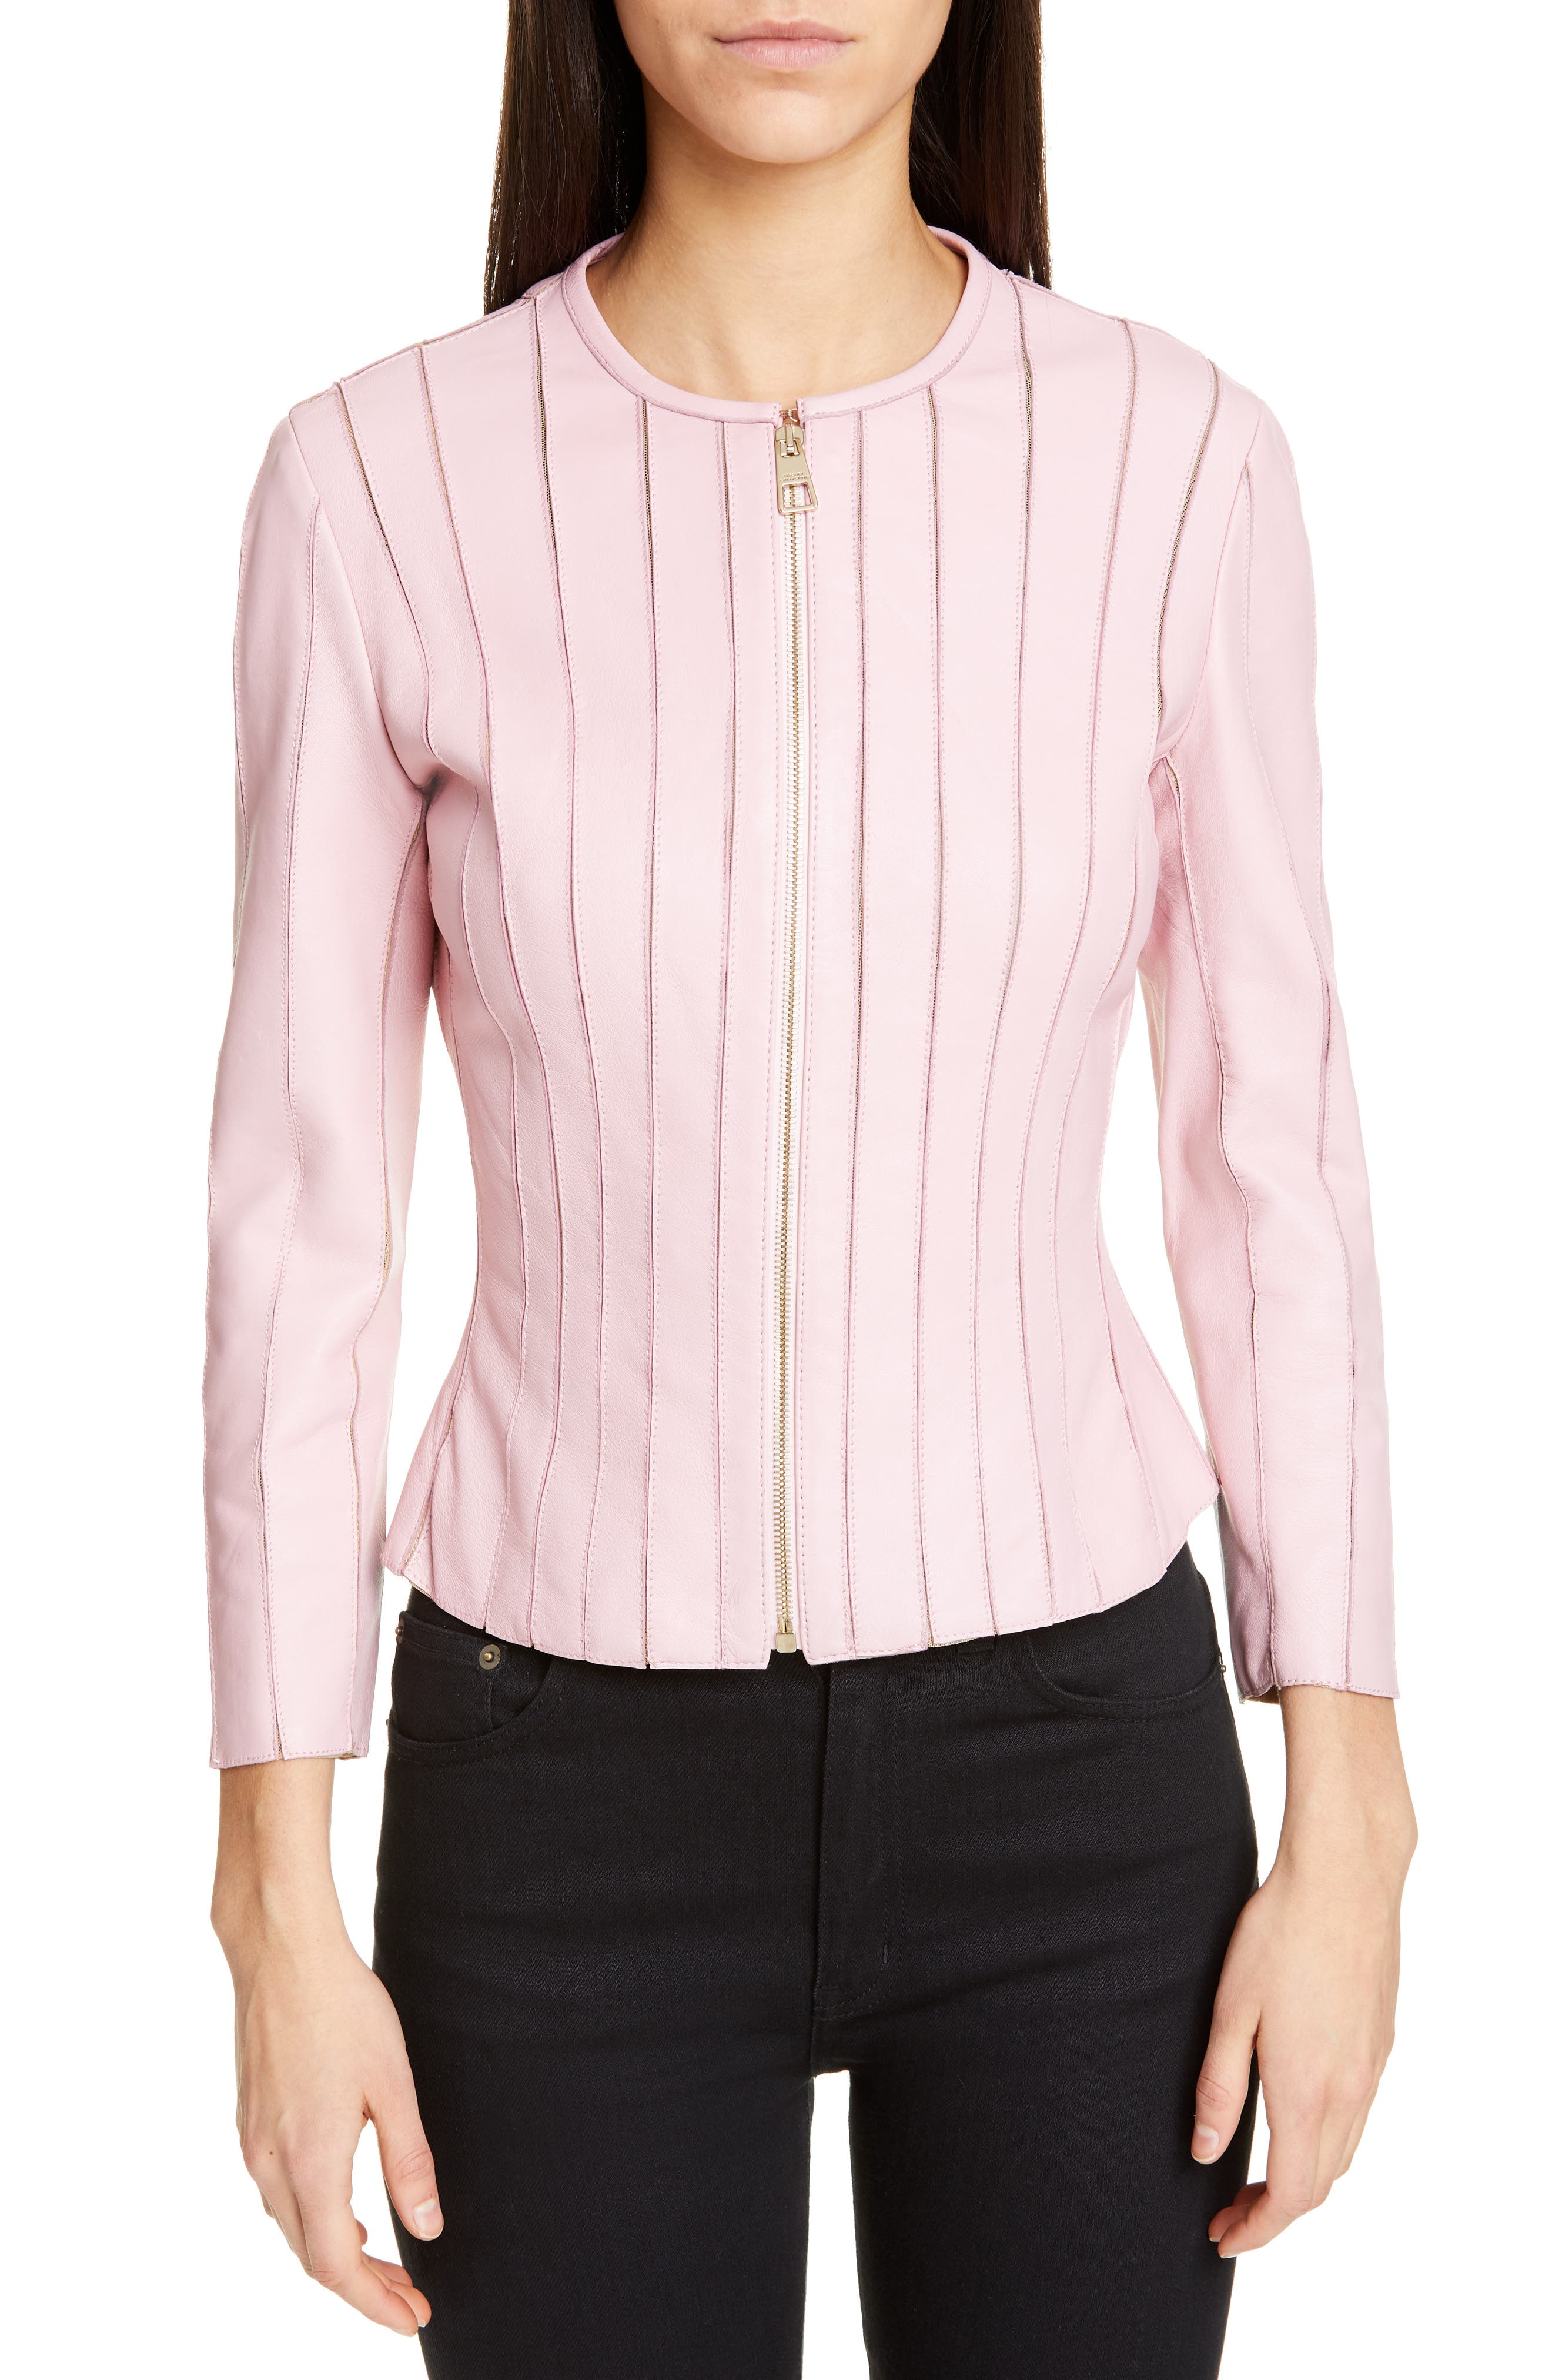 VERSACE COLLECTION, Mesh Rib Leather Jacket, Main thumbnail 1, color, PASTEL ROSE